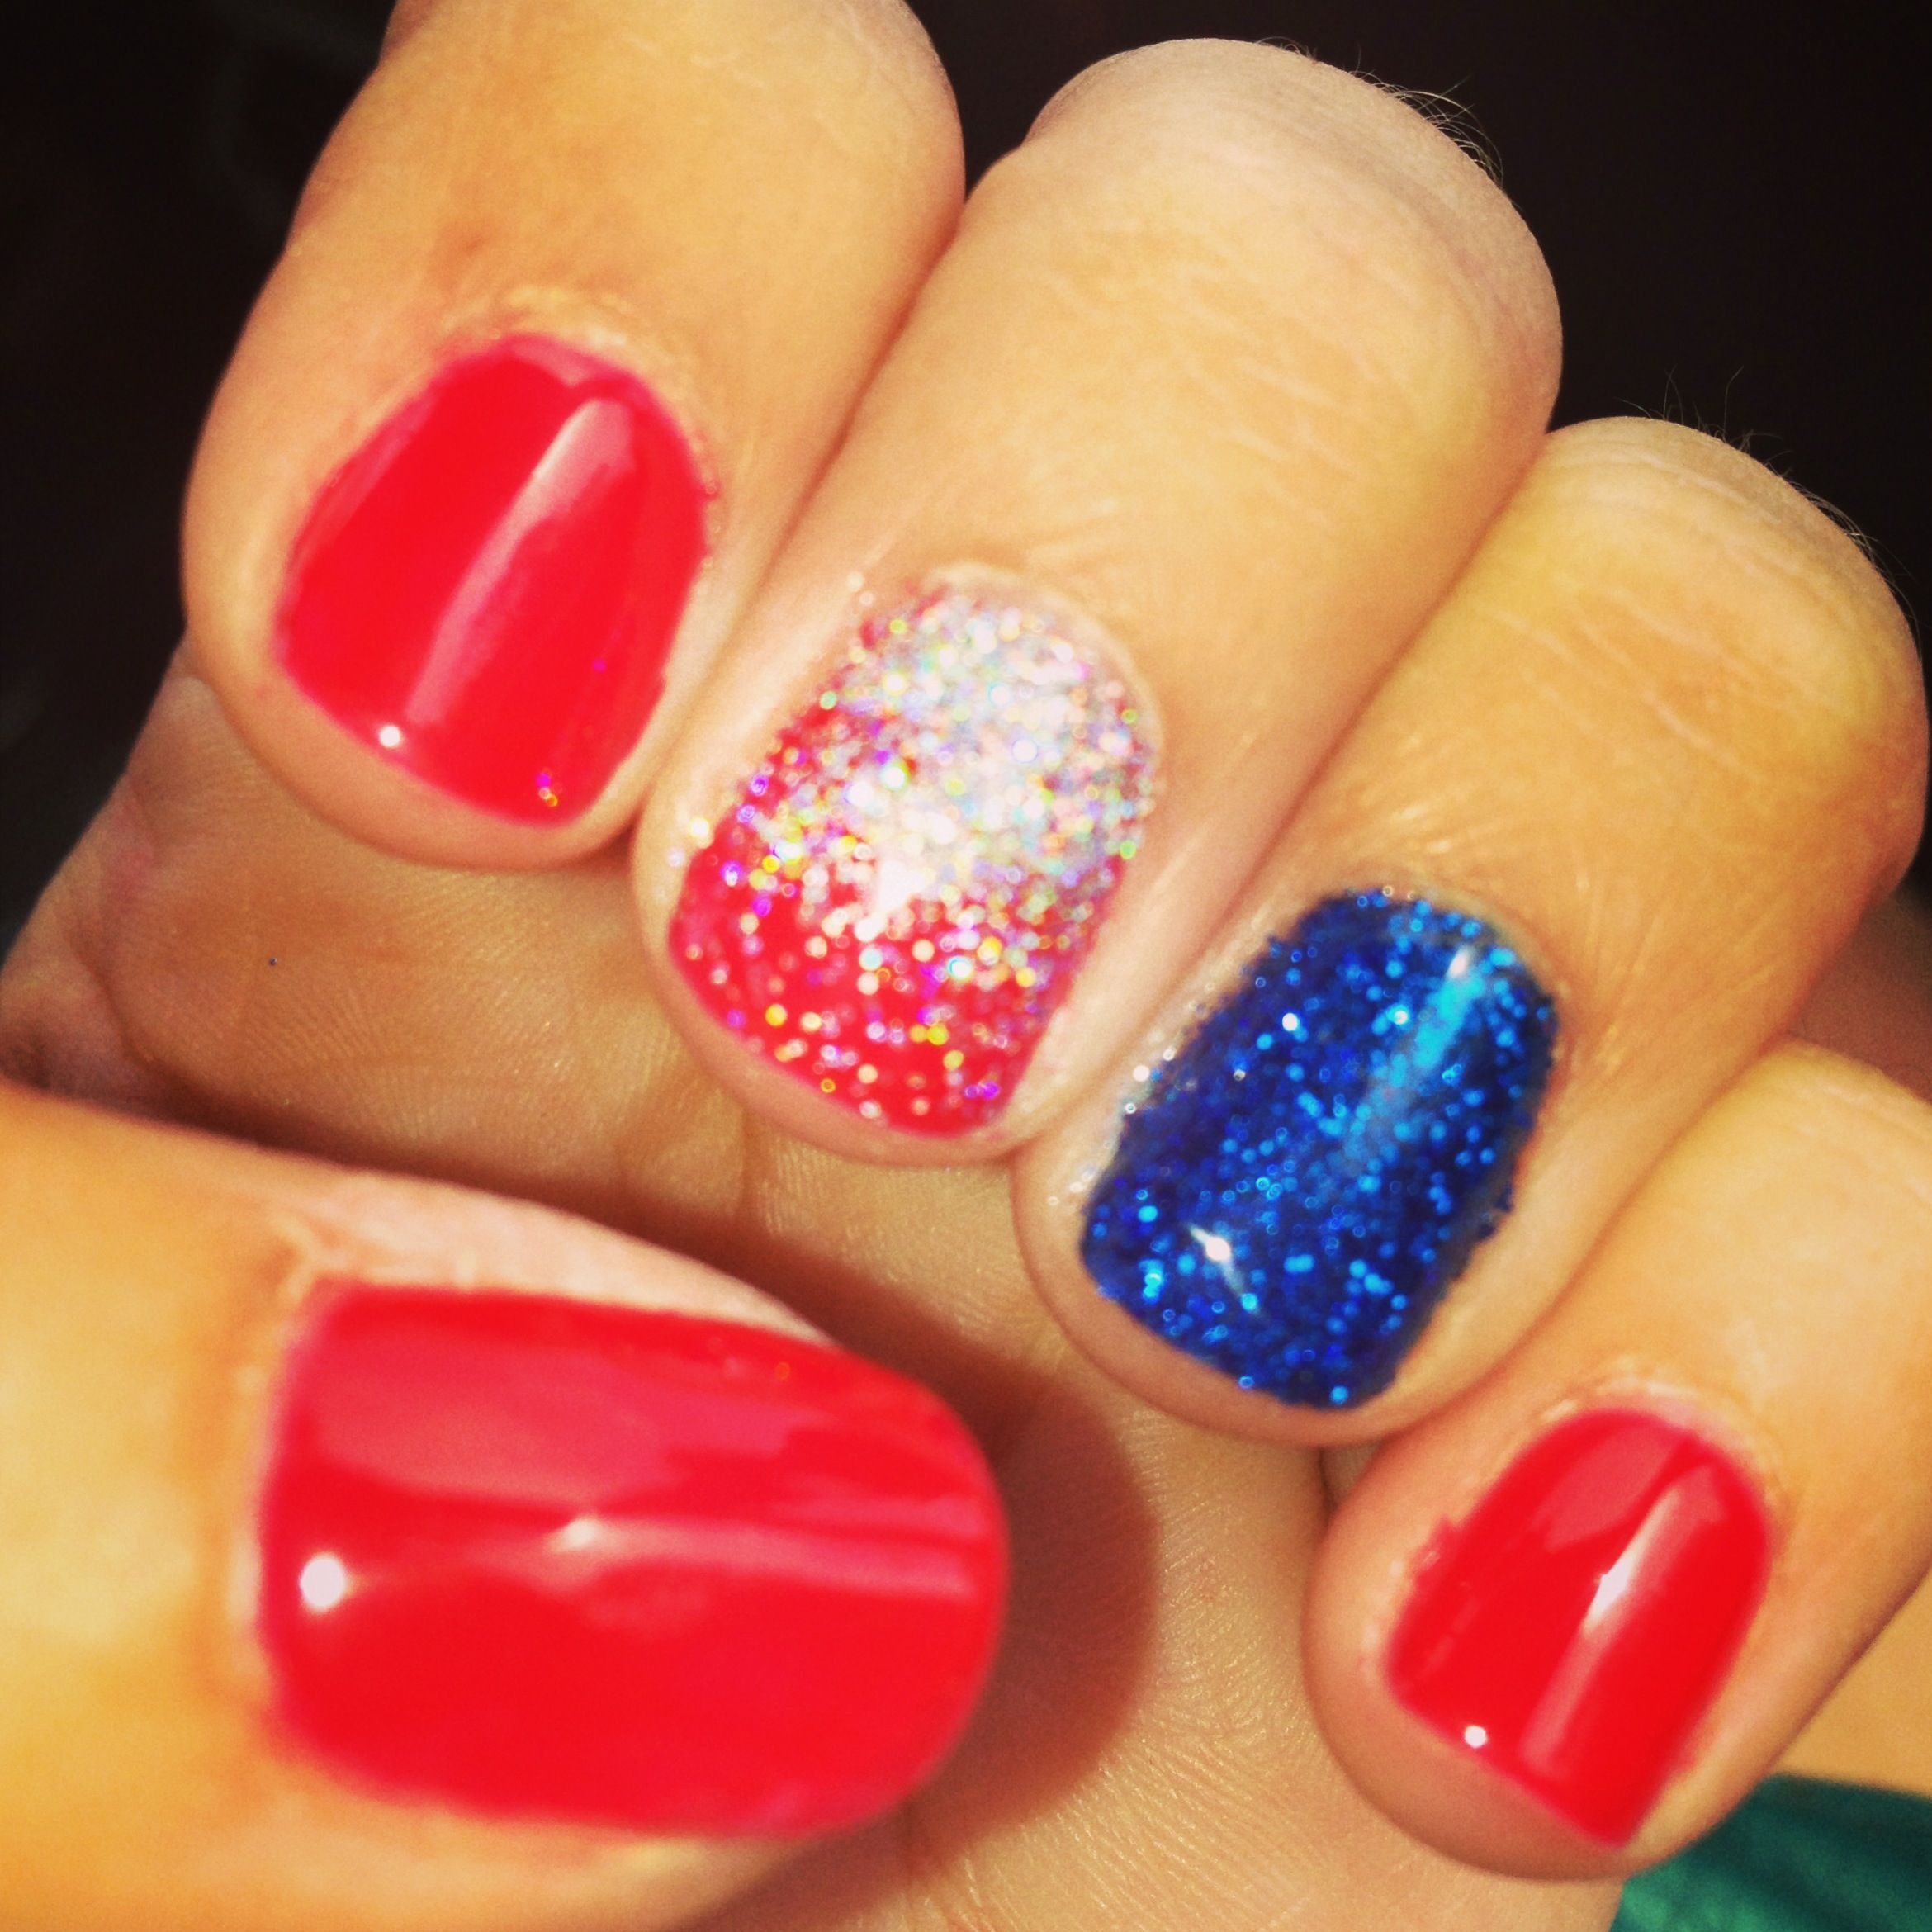 21 Best 4th of July Nails to Celebrate in Style recommendations